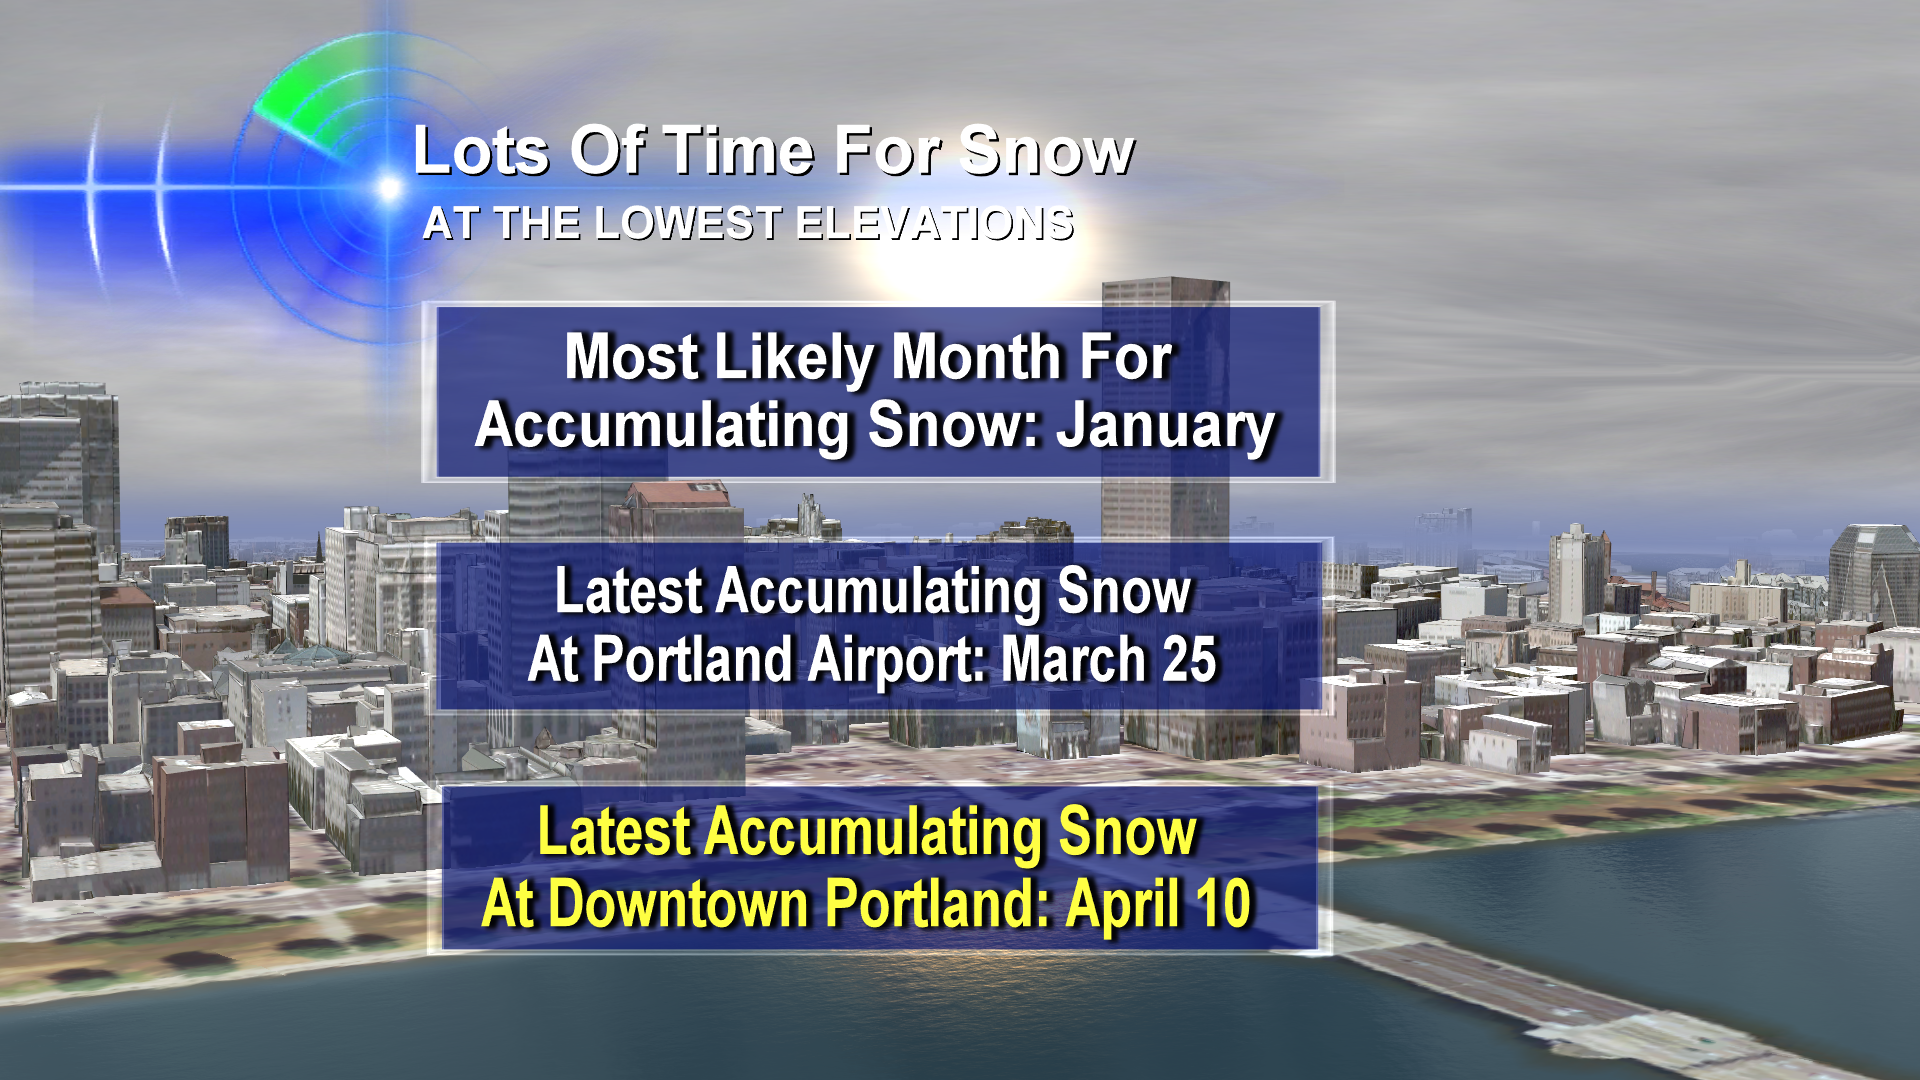 I Heard It On The Radio: It's Going To Snow This Week in Portland